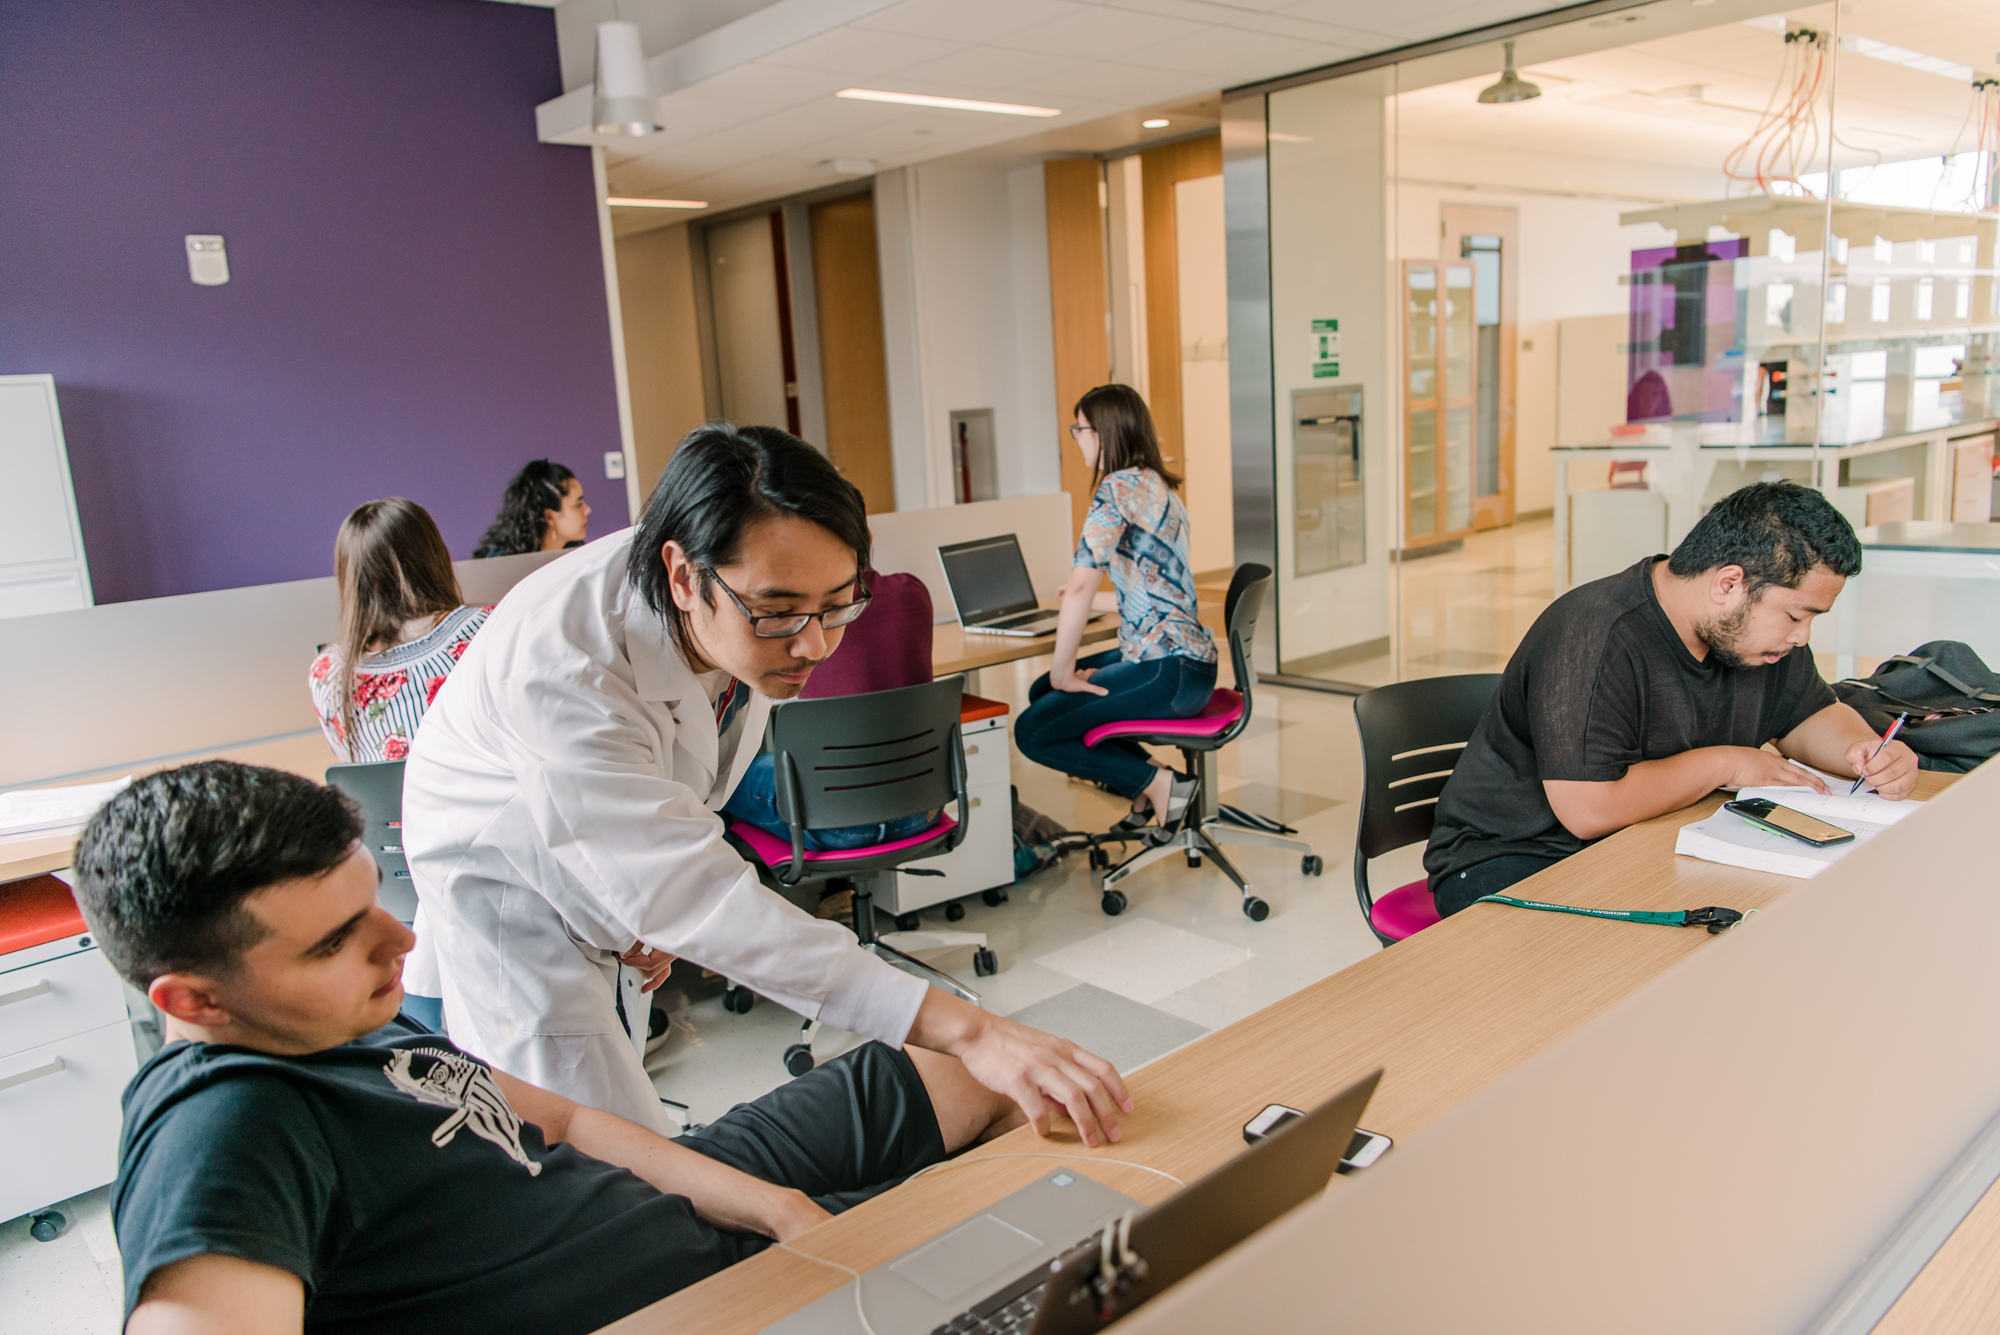 People work at desks in ILSB with student in lab coat helping out